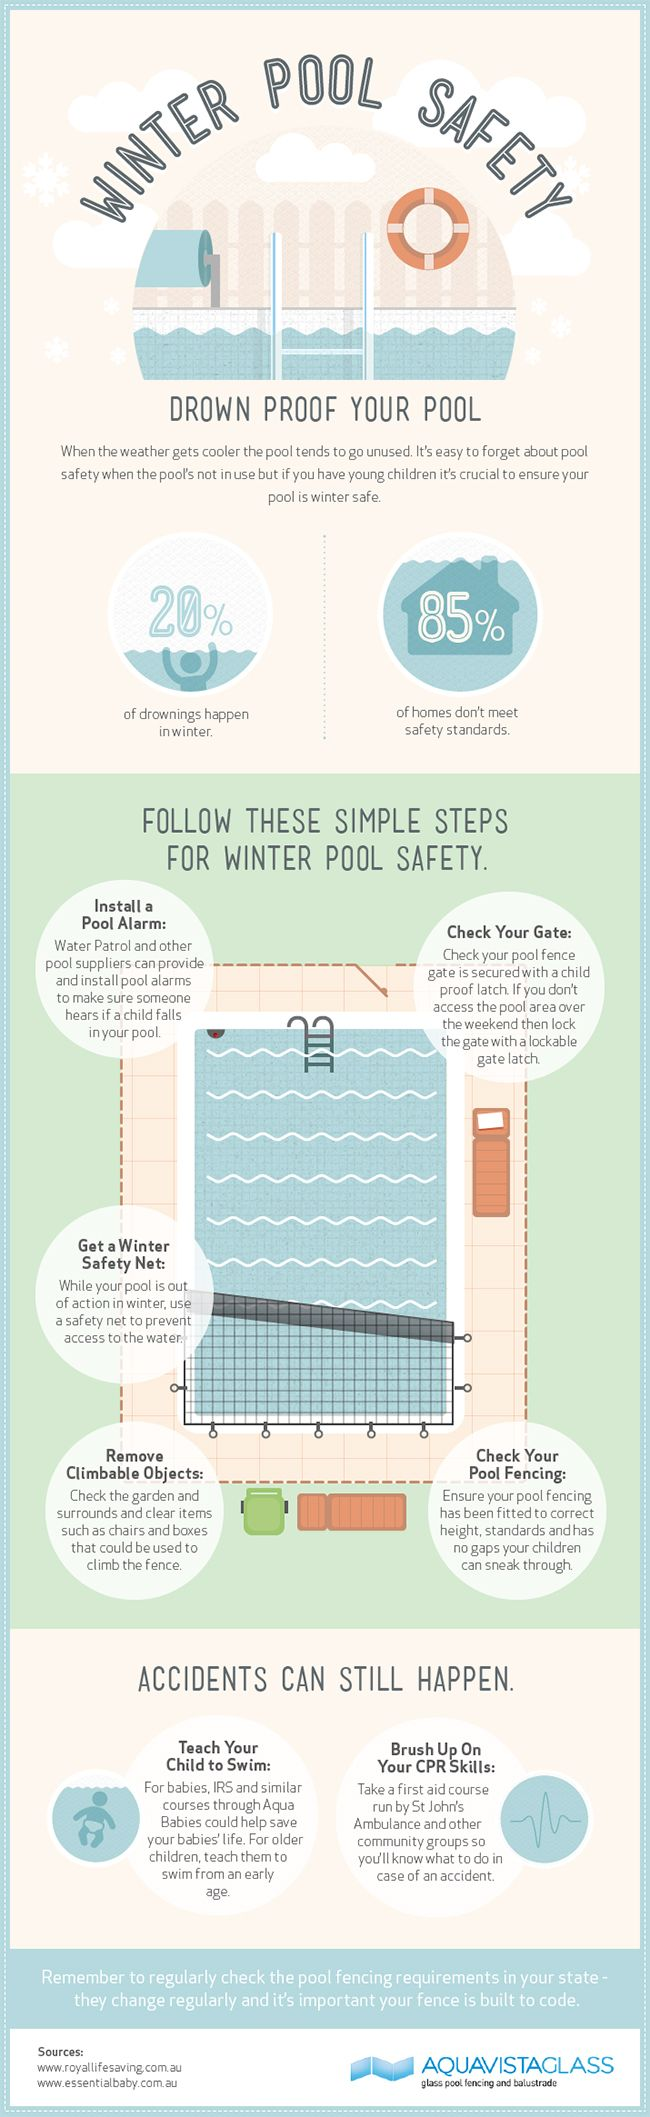 Winter Pool Safety Practices Pool Safety Swimming Pool Safety Backyard Pool